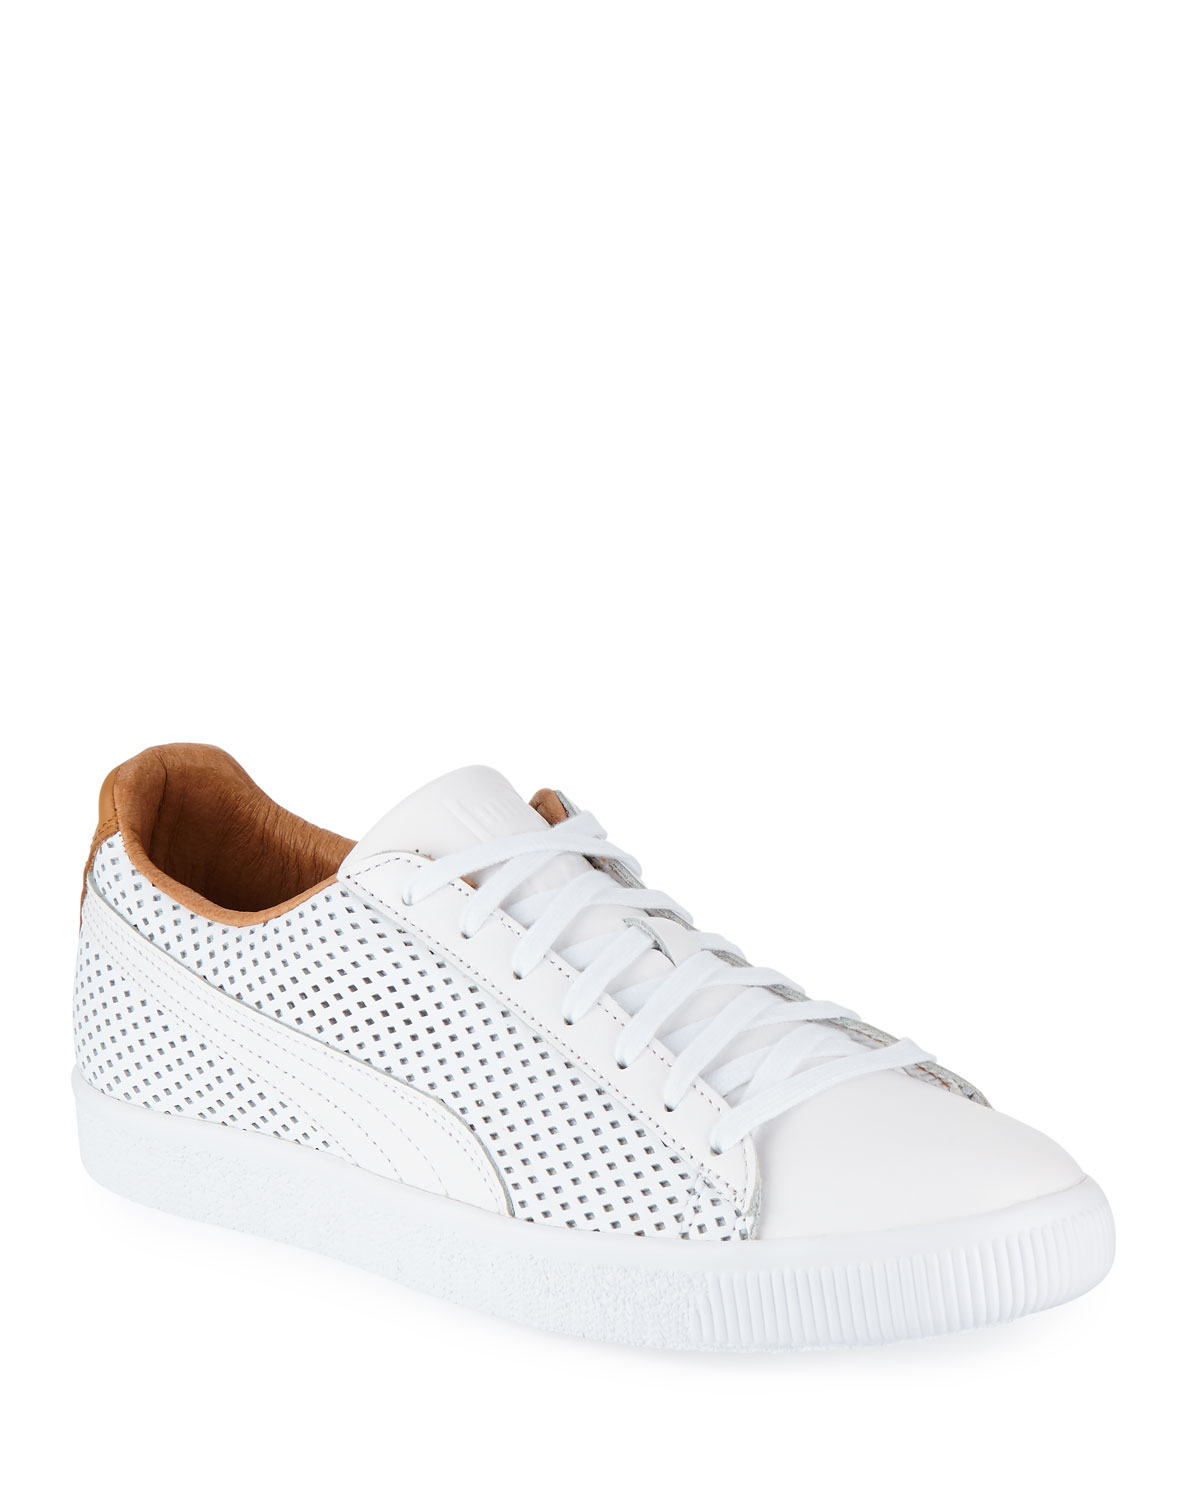 6ebe24490578 Quick Look. Puma · Men s Clyde Perforated Leather Creeper Sneakers